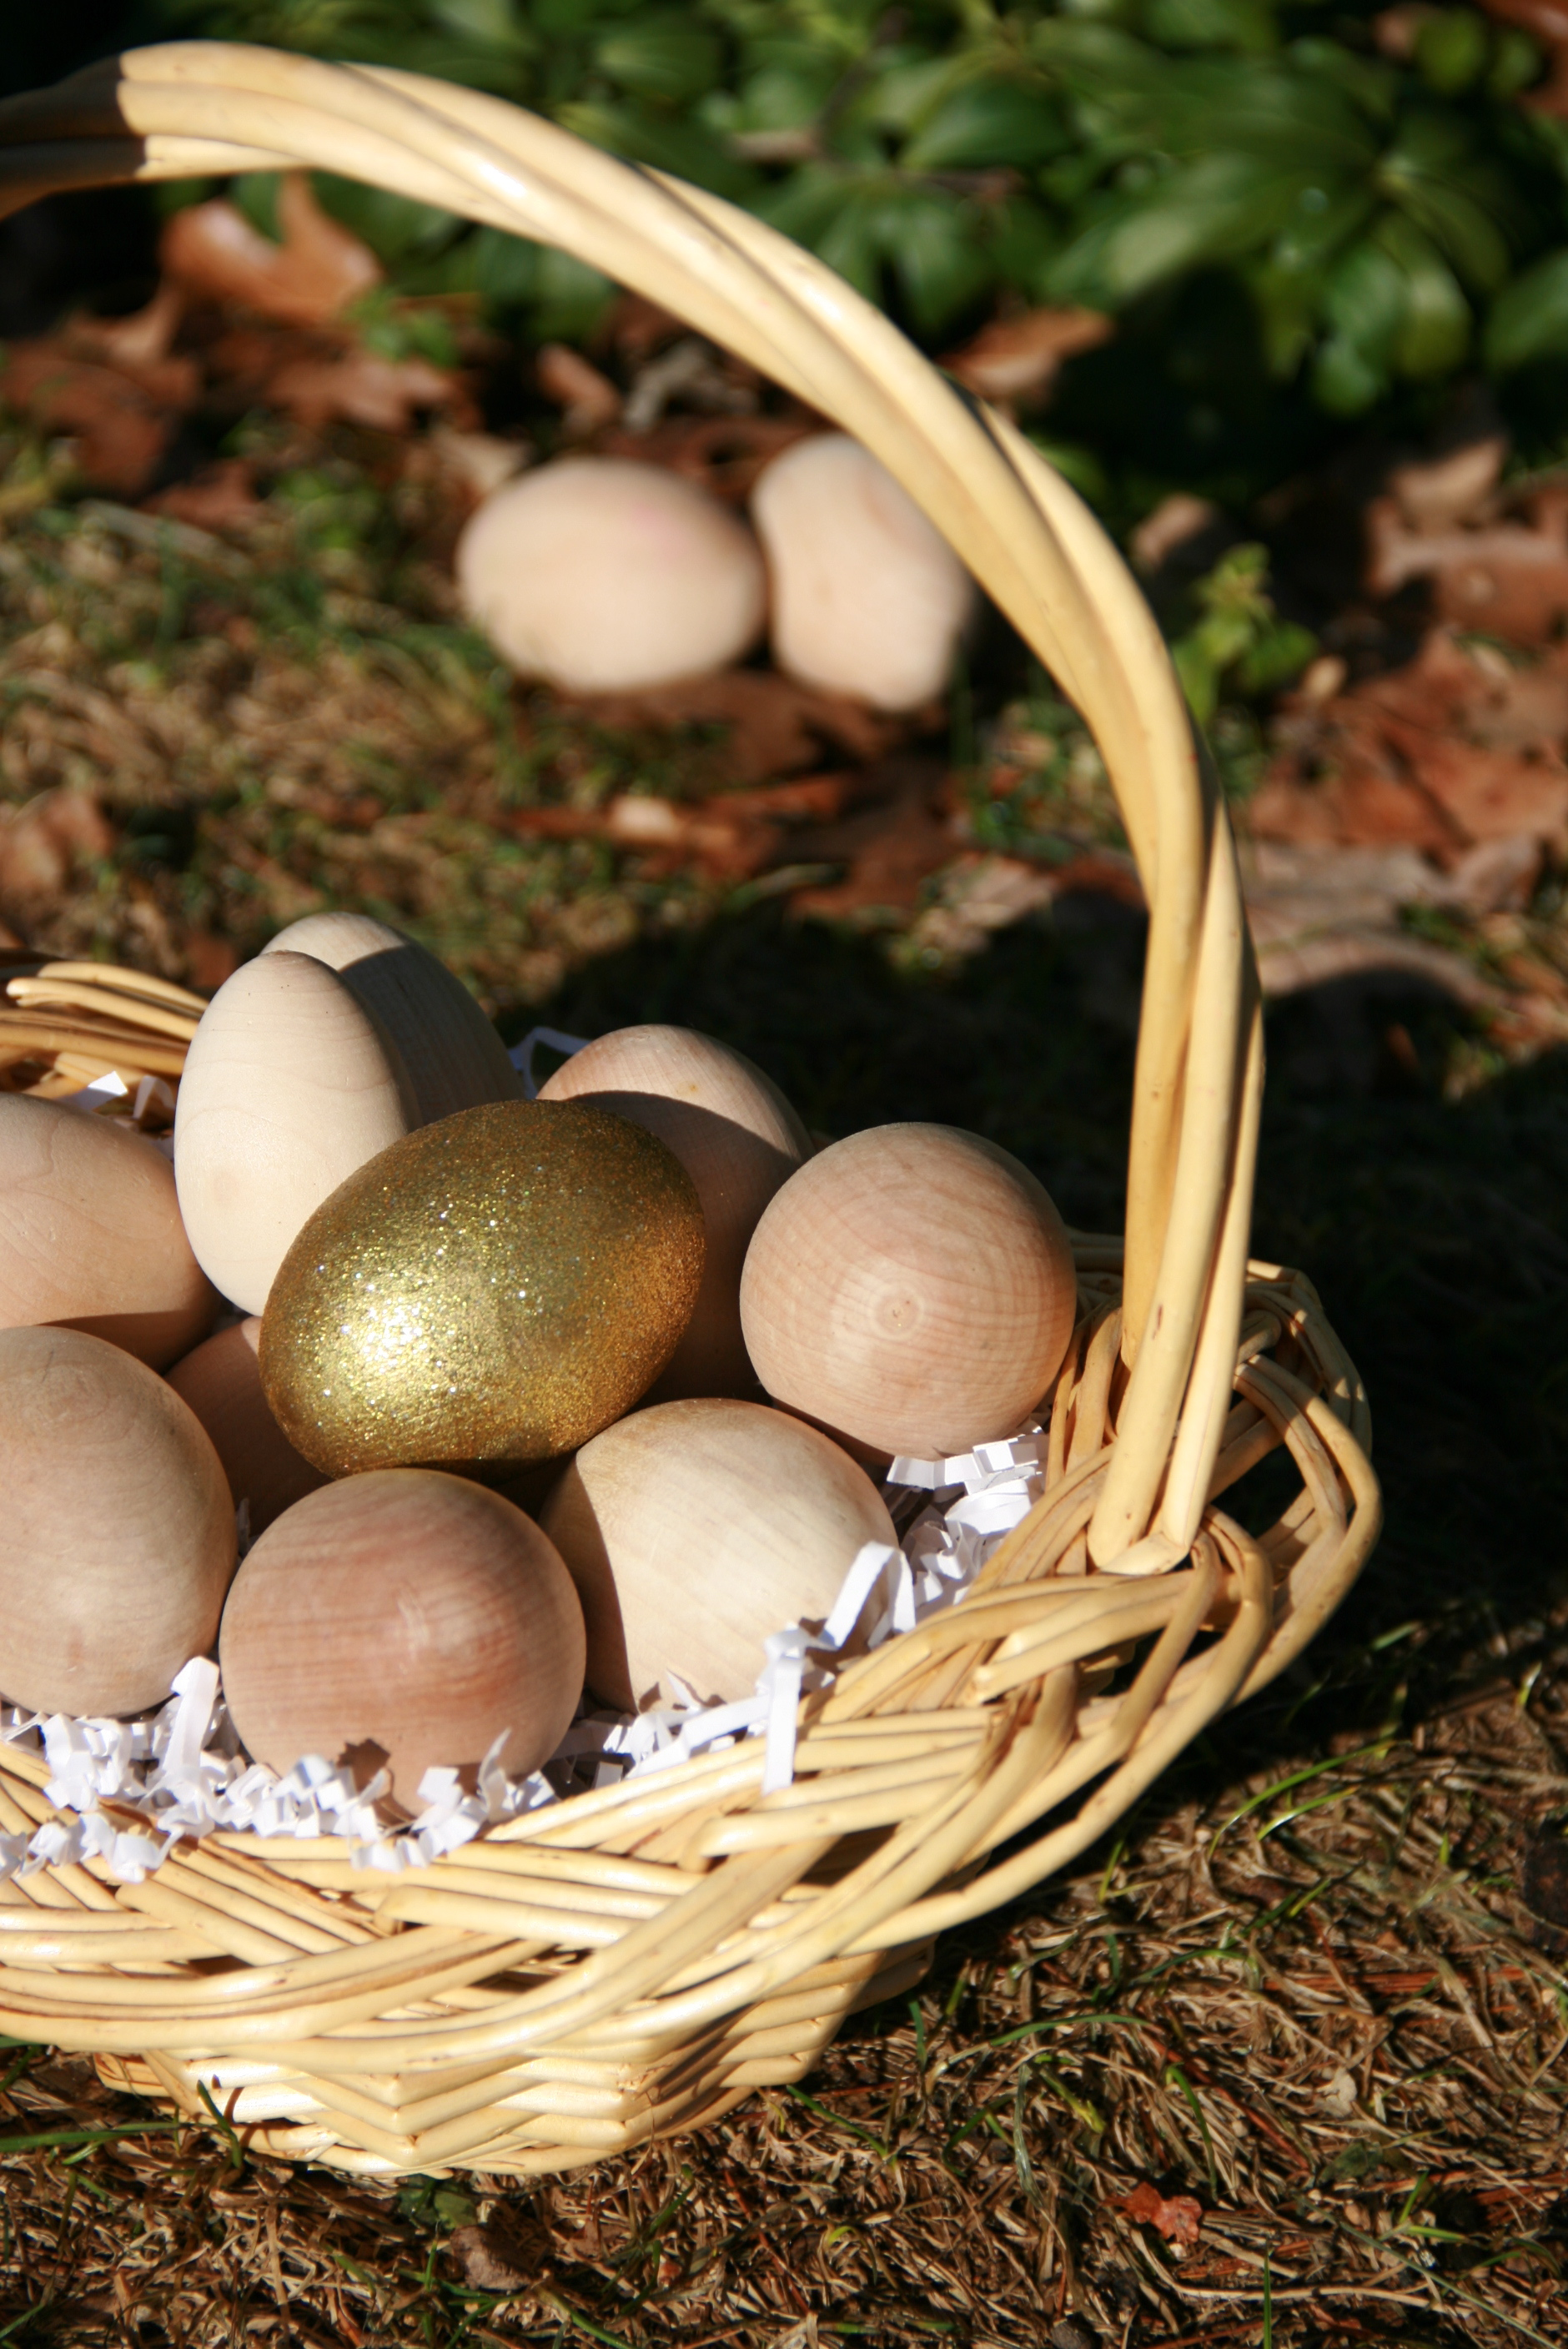 Camouflaged Egg Hunt this Saturday